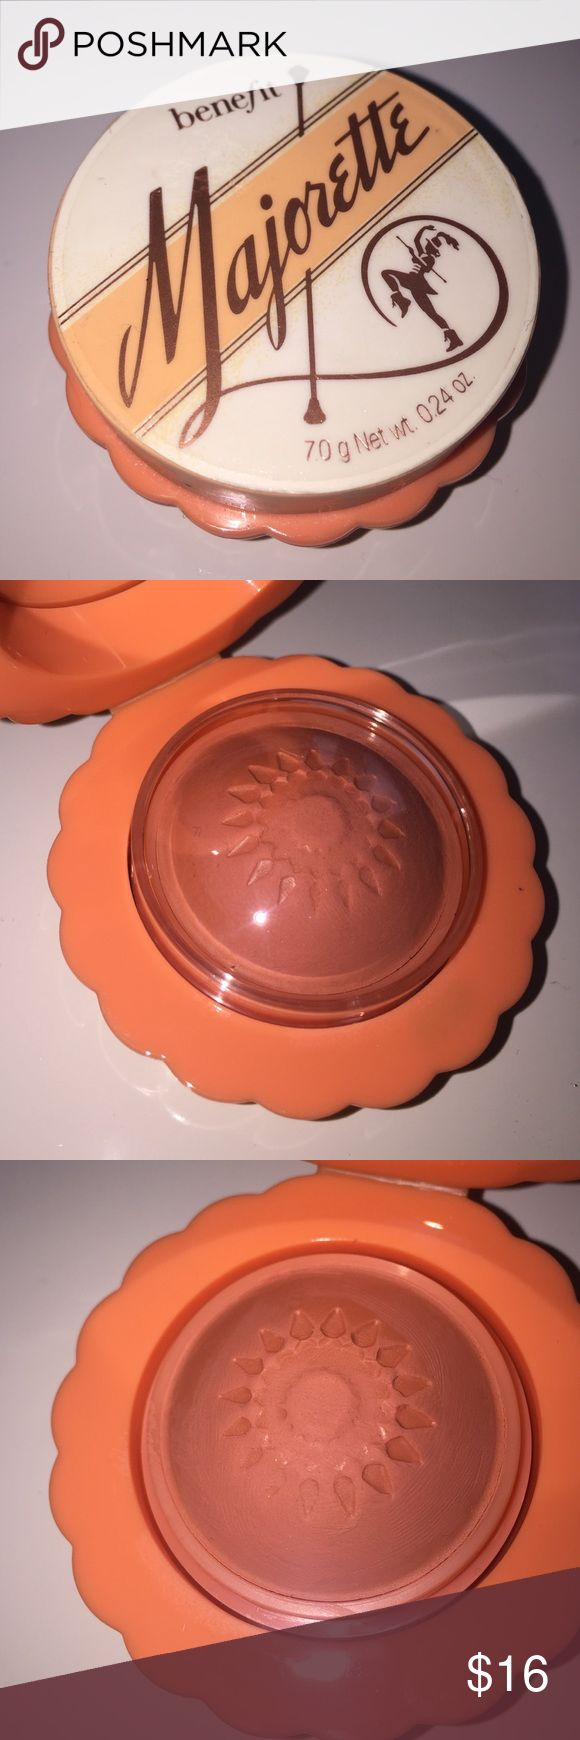 Benefit Majorette Cream-to-powder Blush Never used, only swatched, will be sanitized prior to shipping. This shade is gorgeous & is smells devine! Benefit Makeup Blush